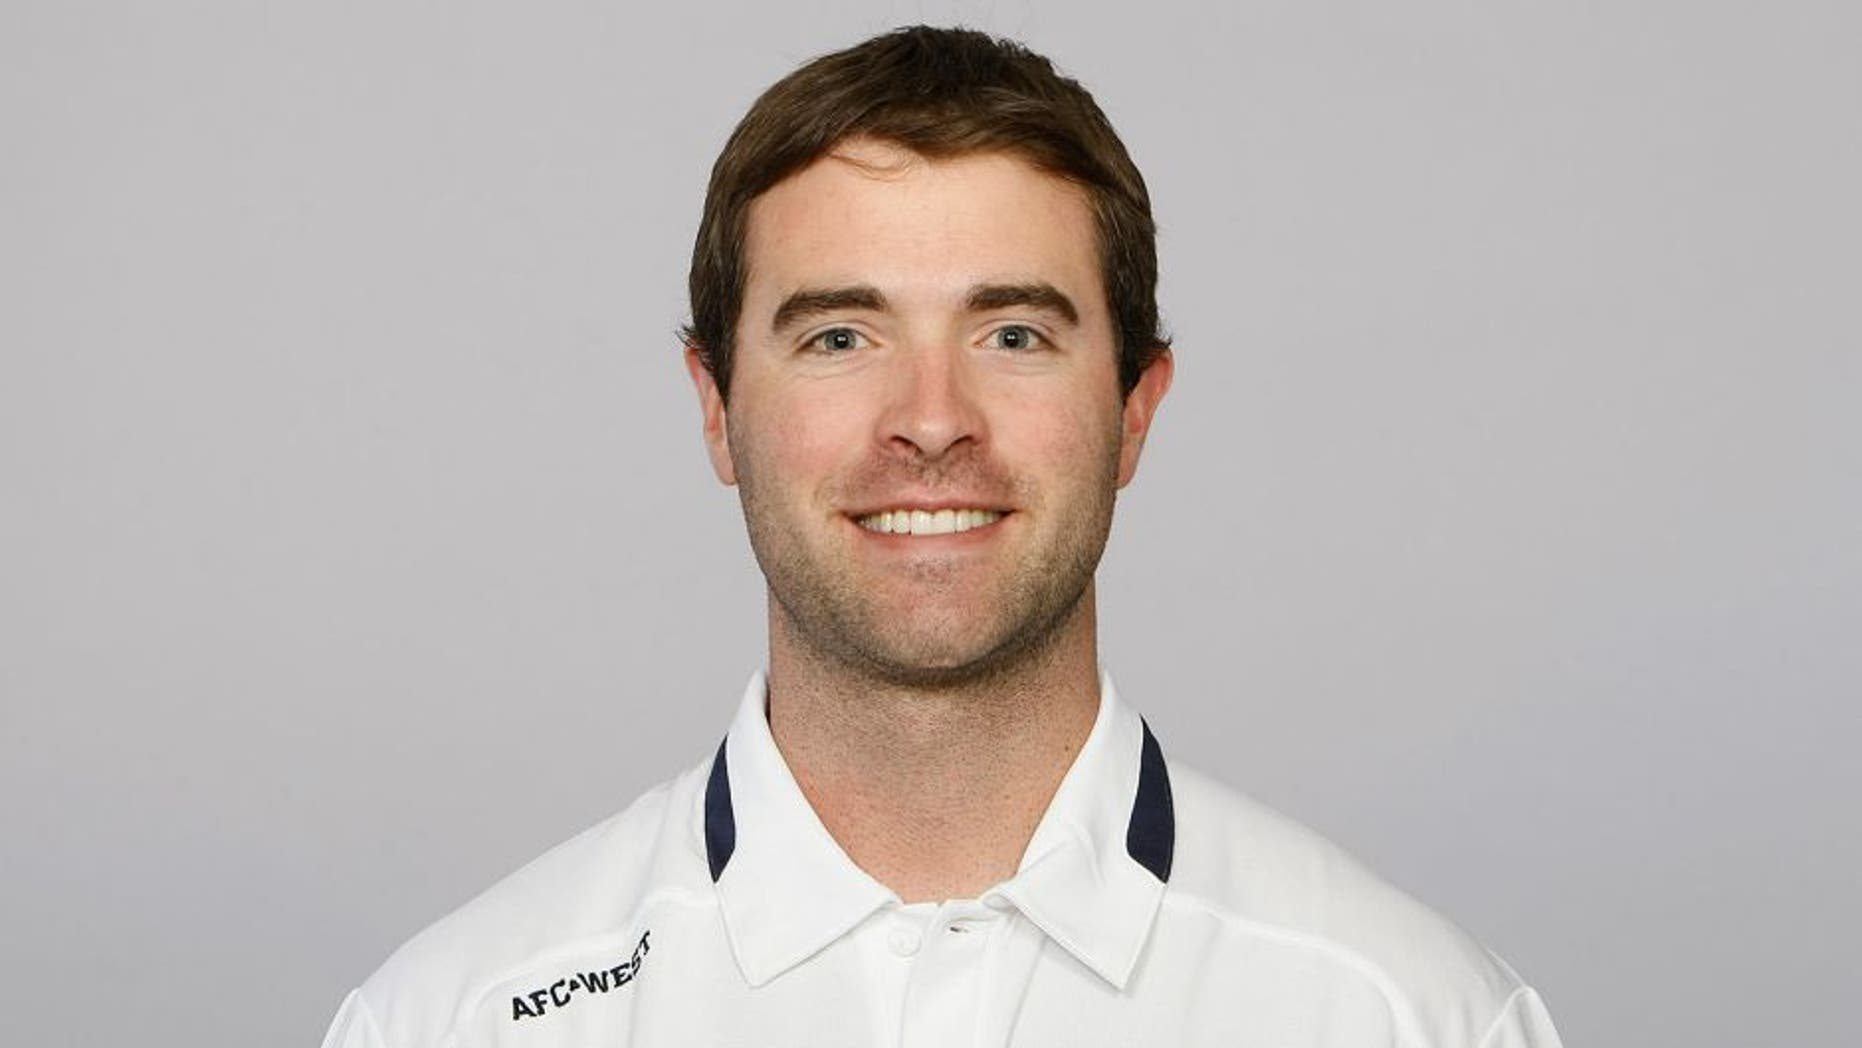 ENGLEWOOD, CO - CIRCA 2011: In this handout image provided by the NFL, Brian Callahan of the Denver Broncos poses for his NFL headshot circa 2011 in Englewood, Colorado. (Photo by NFL via Getty Images)